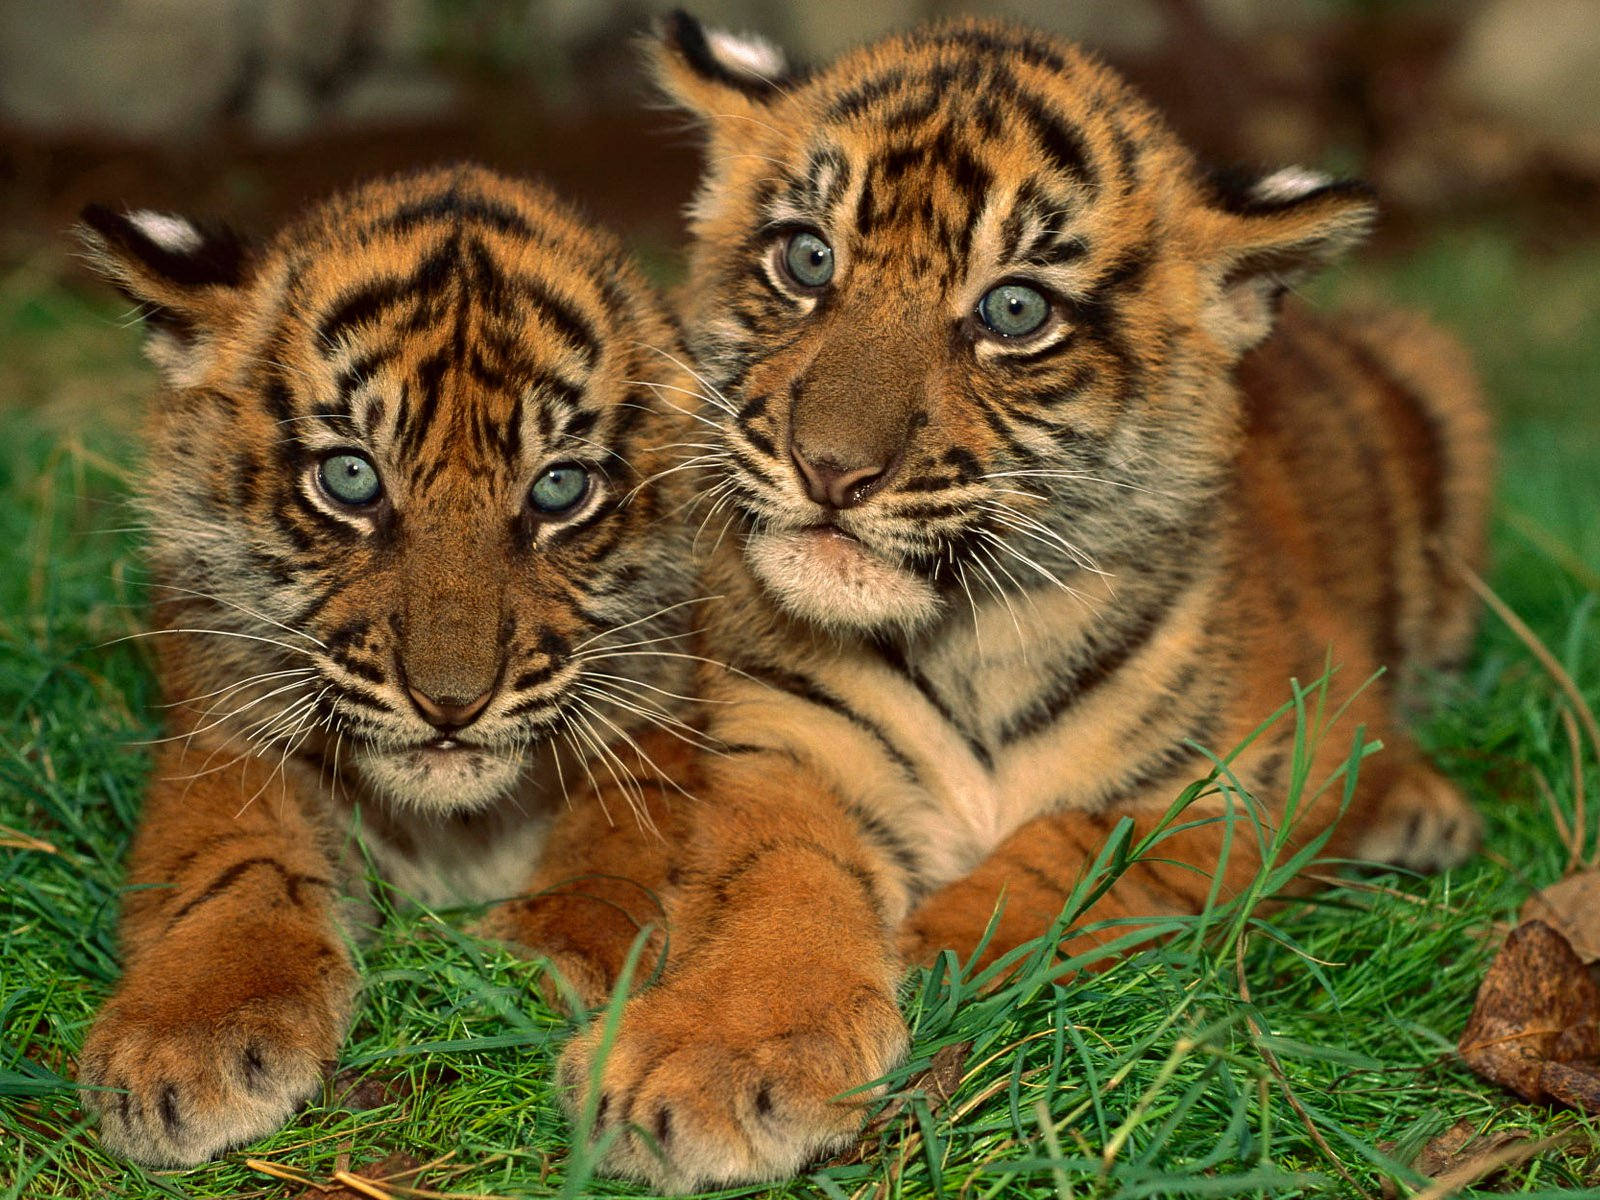 Funny wallpapersHD wallpapers cute tiger background 1600x1200